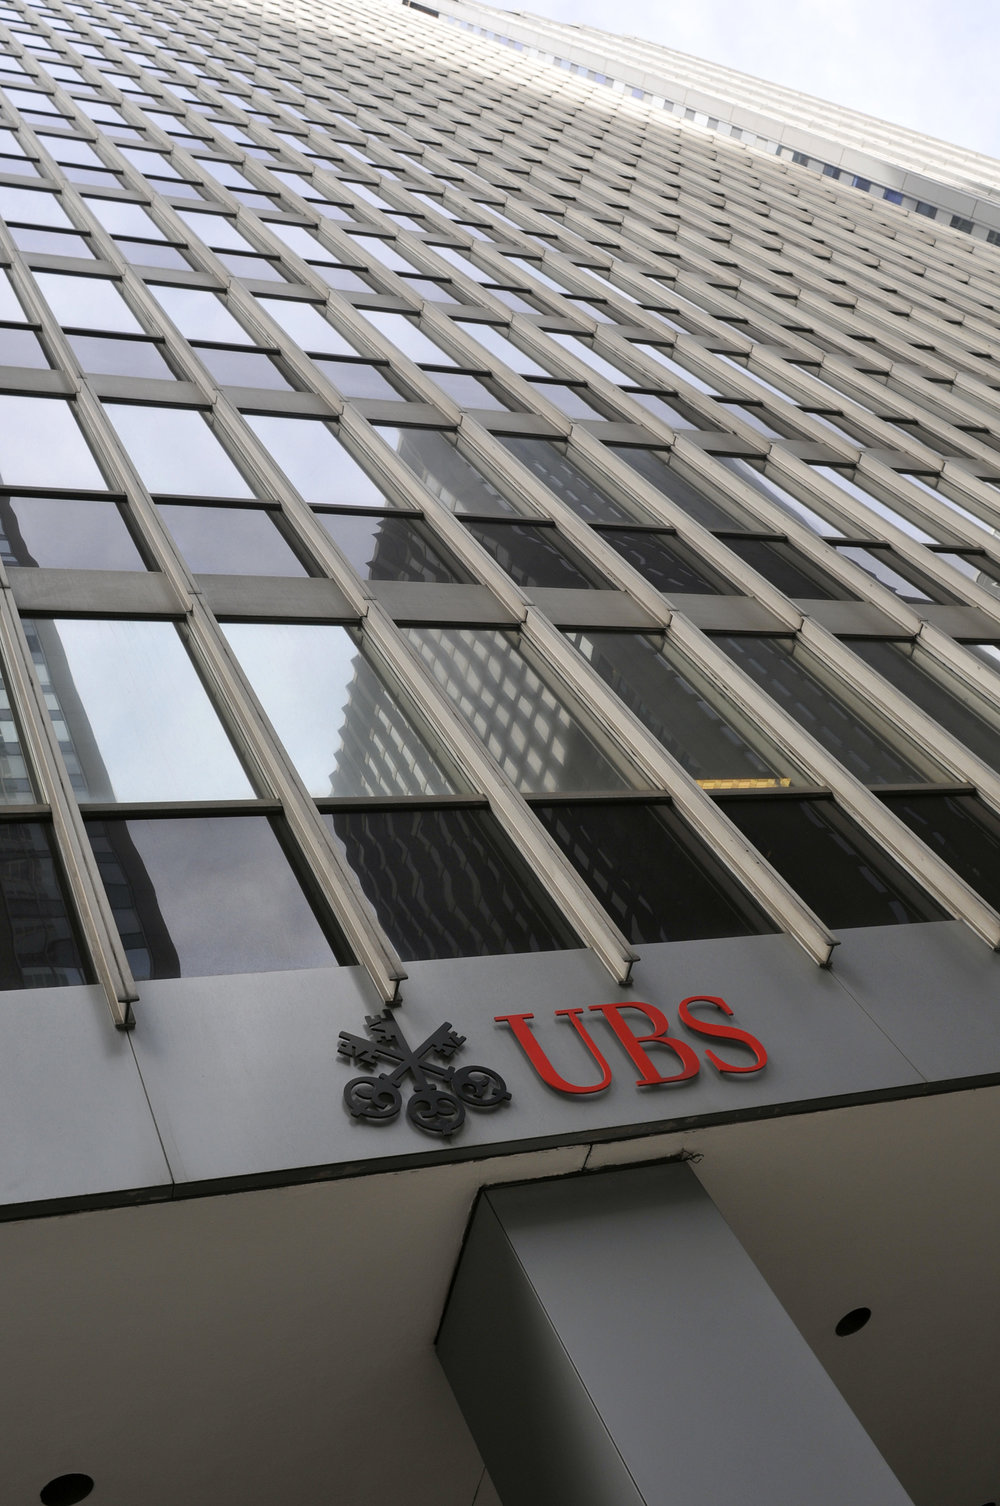 Banks such as UBS (whose New York City office is pictured here) have closed Islamic Relief bank accounts over terrorism financing concerns. Credit: Serge Attal/Flash90.